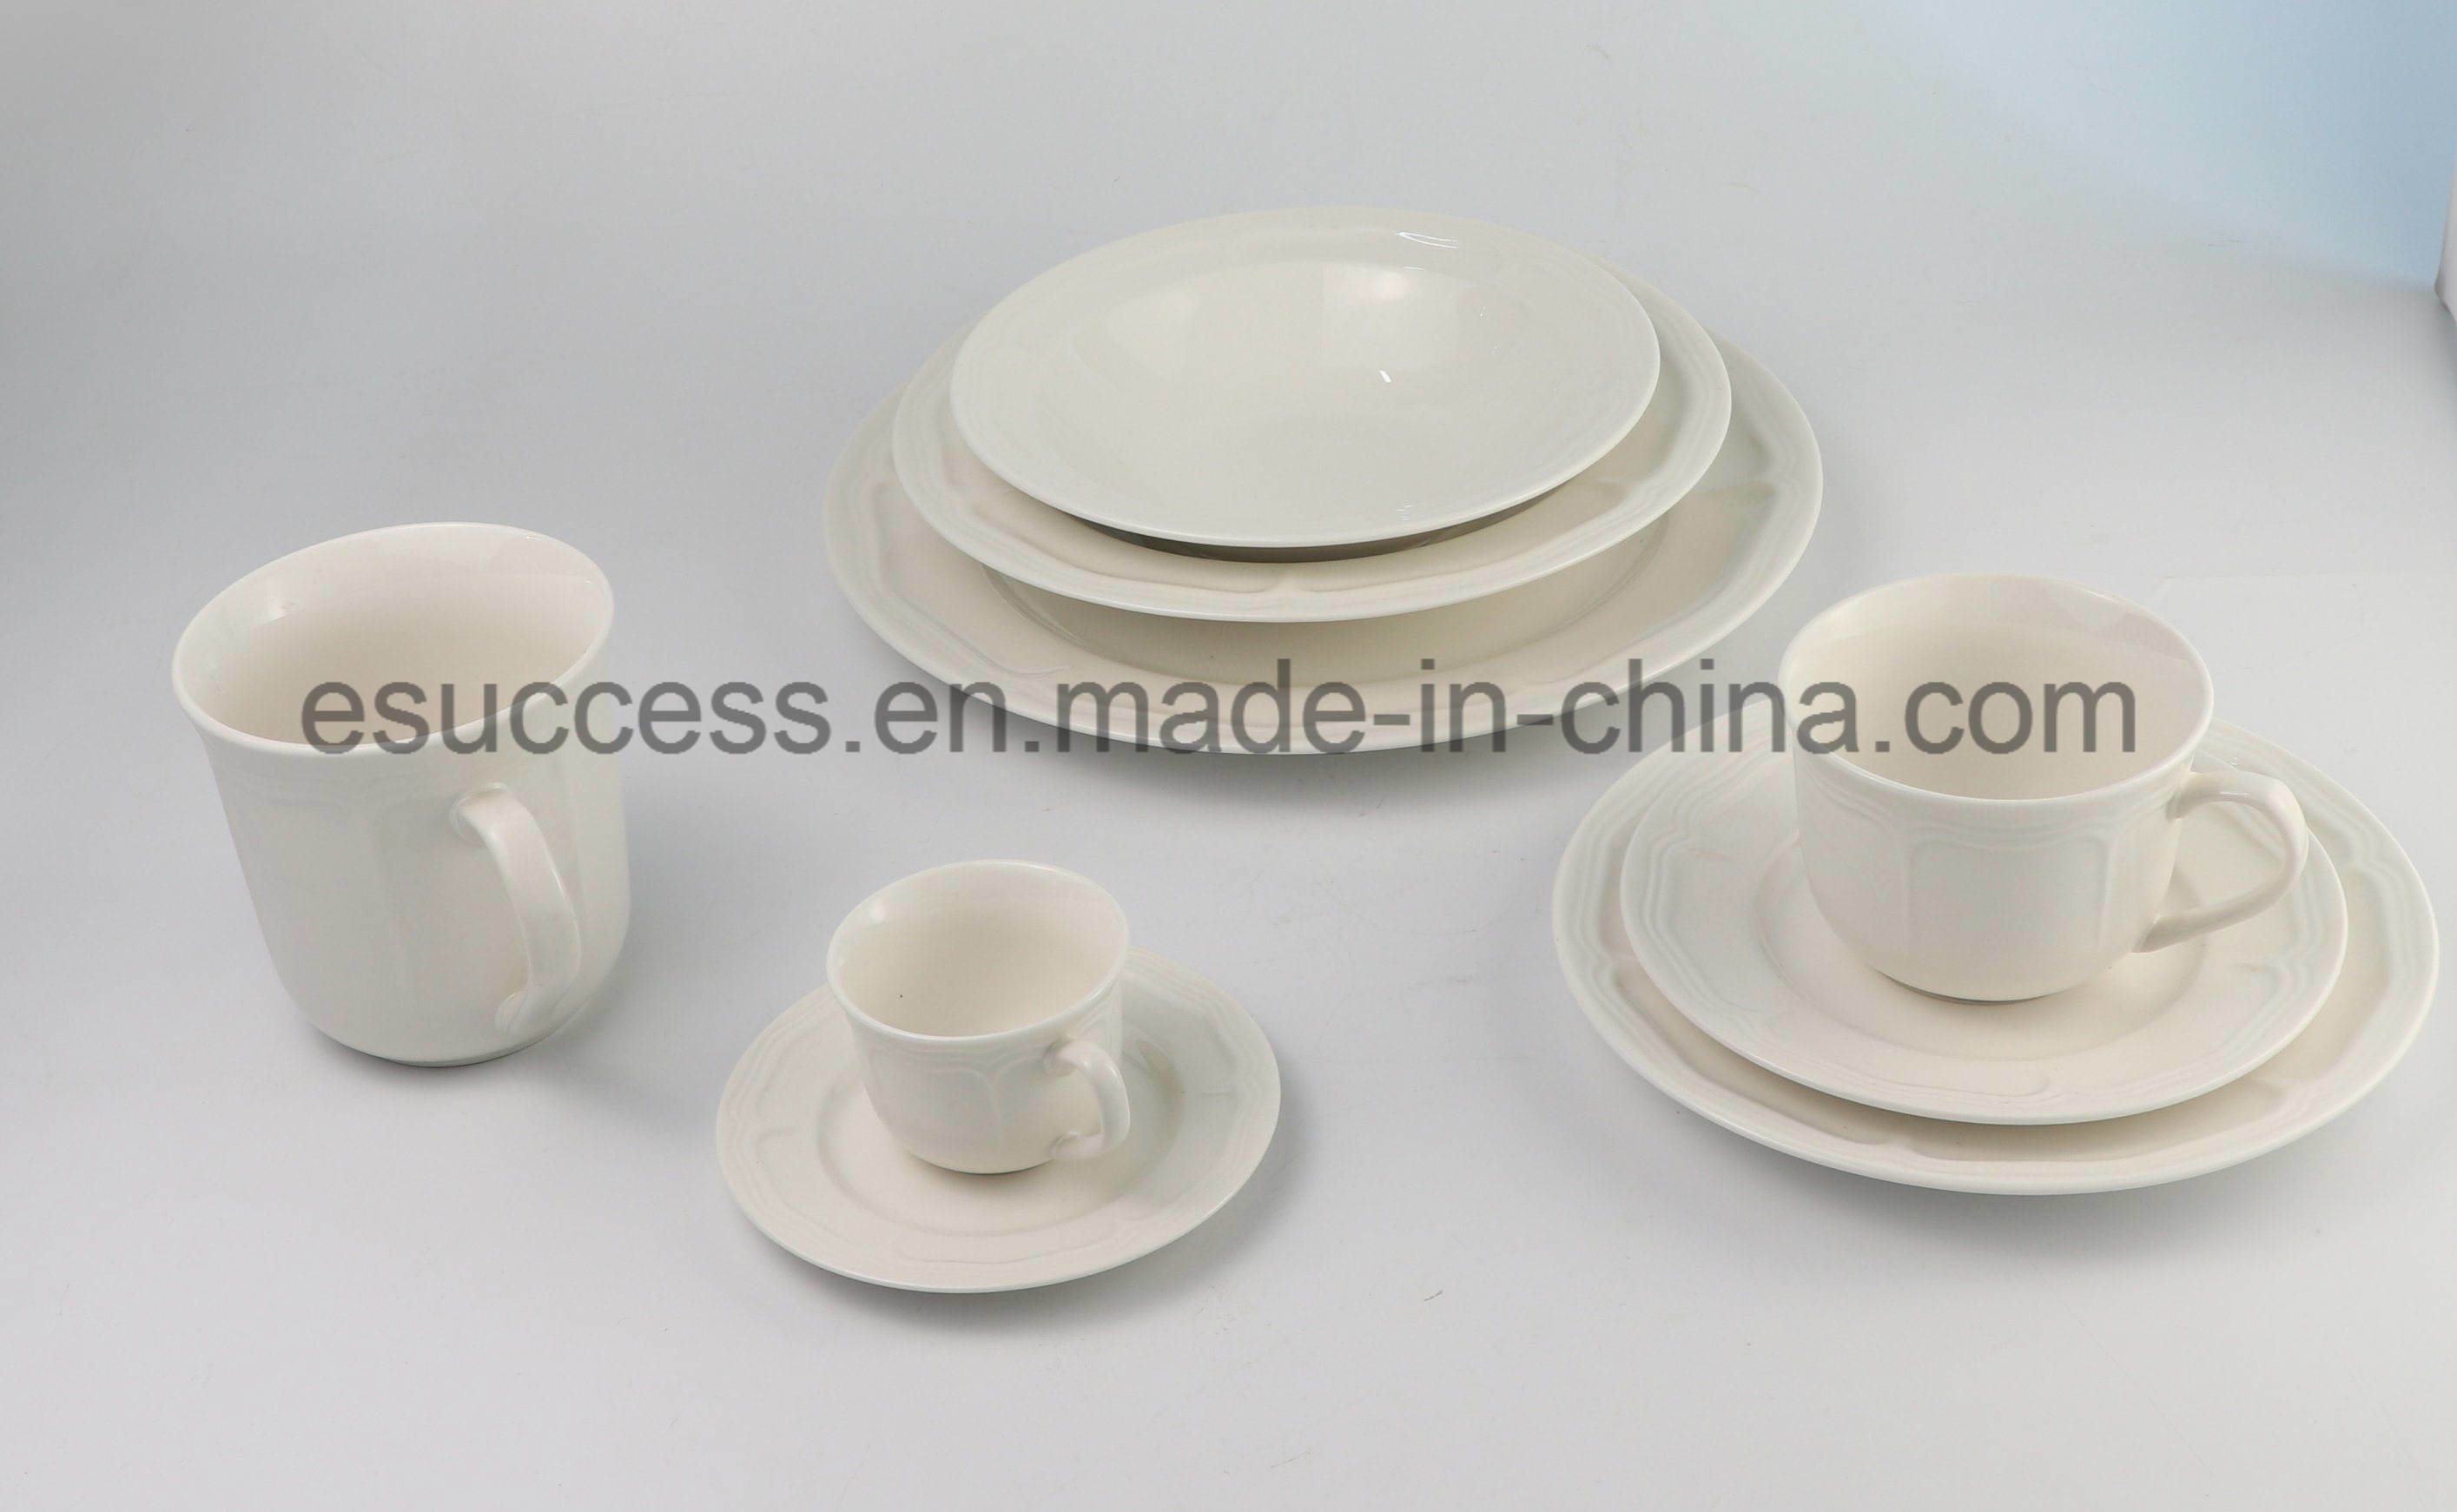 [Hot Item] China Factory Cheap Wholesale Embossed China Daily-Used  Dinnerware